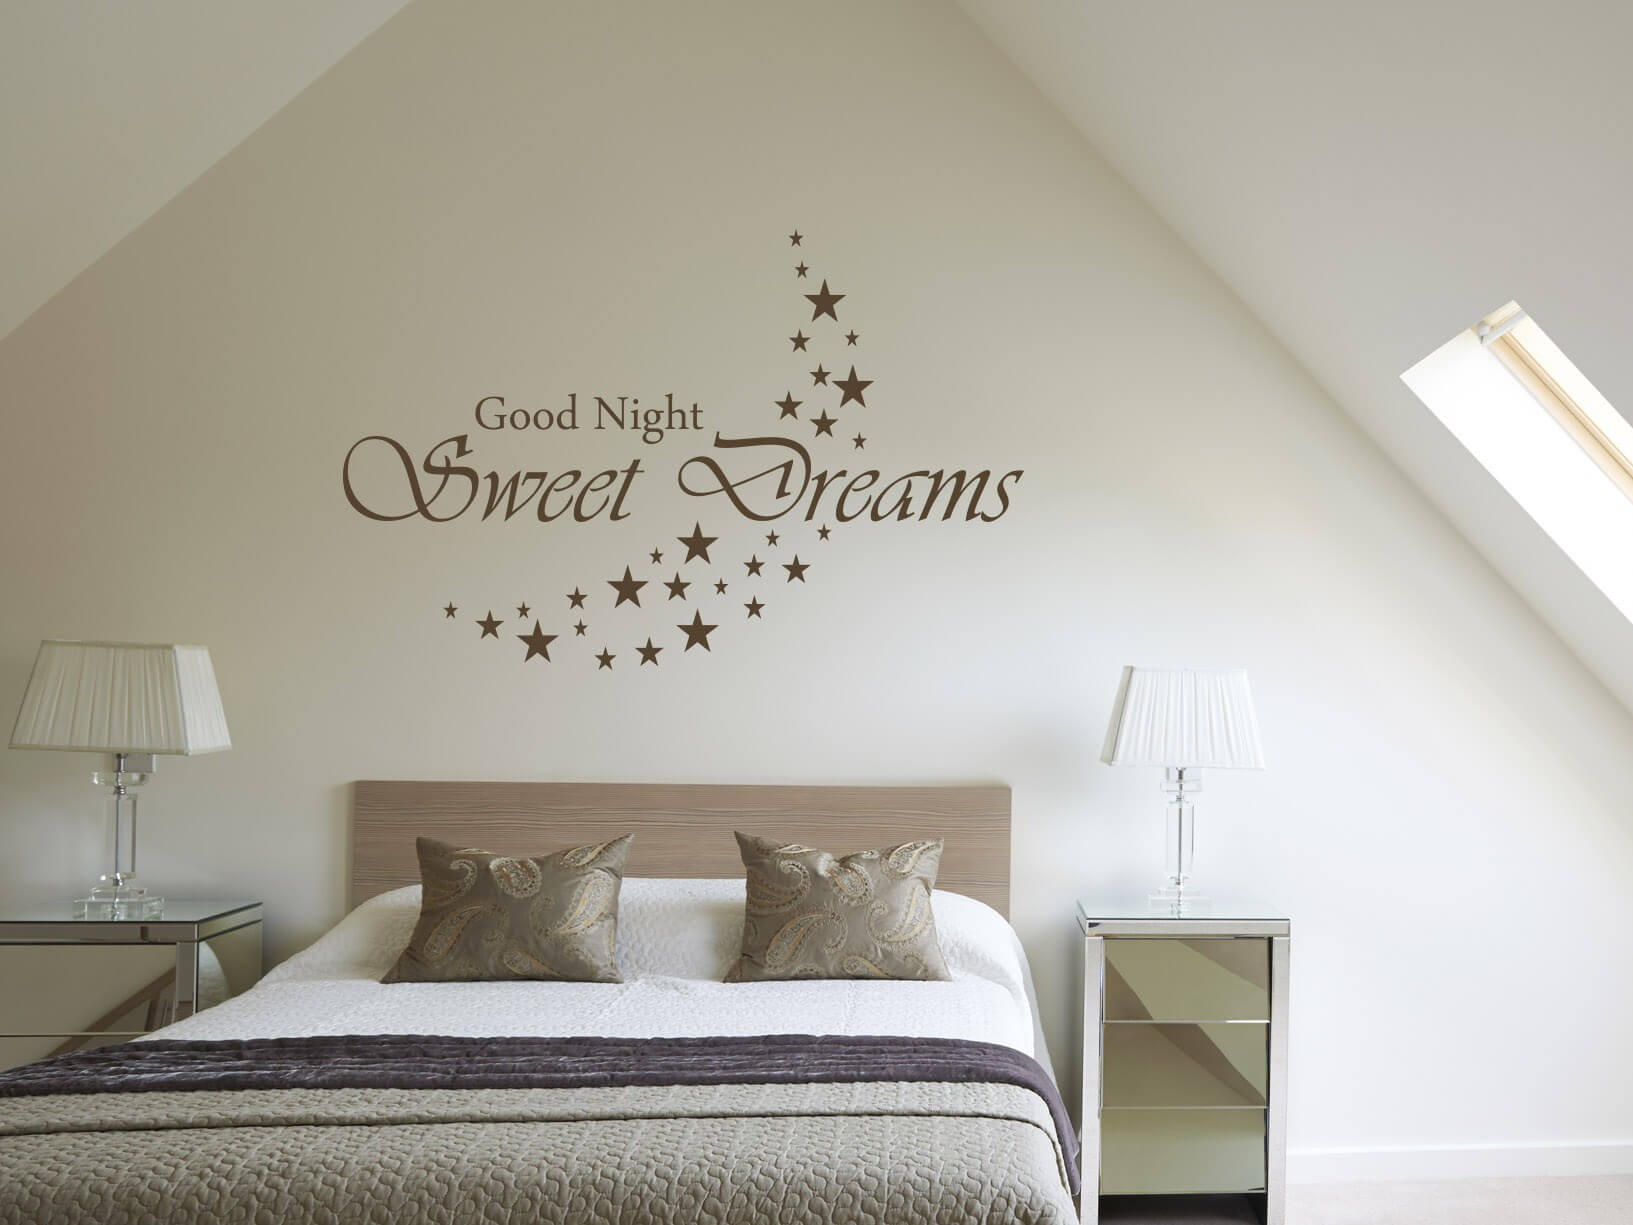 muursticker quotgood night sweet dreamsquot met sterren maan